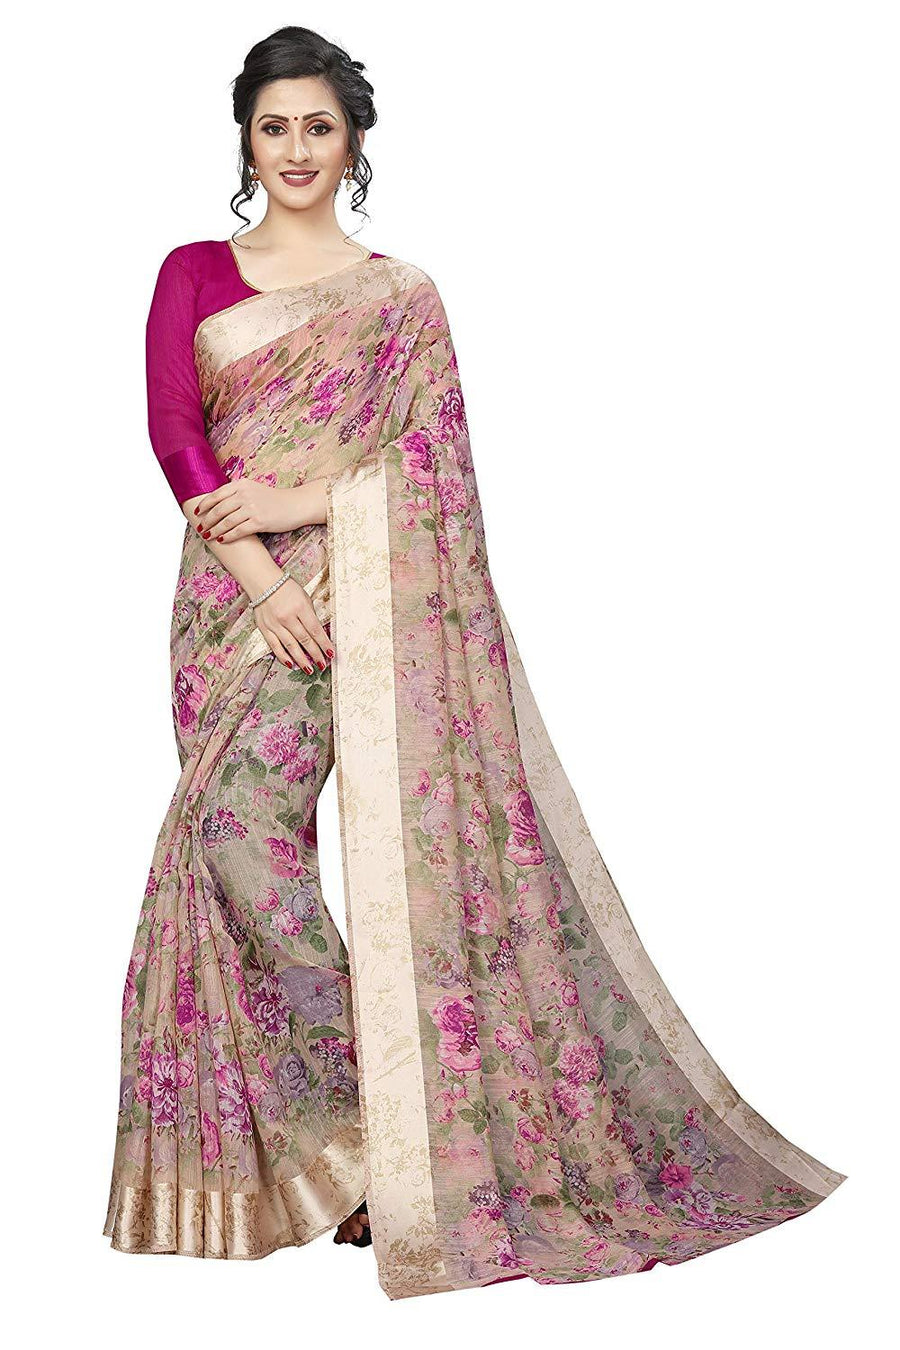 Flaray Women's Blend Linen Saree with Unstitched Blouse Piece - iZiffy.com